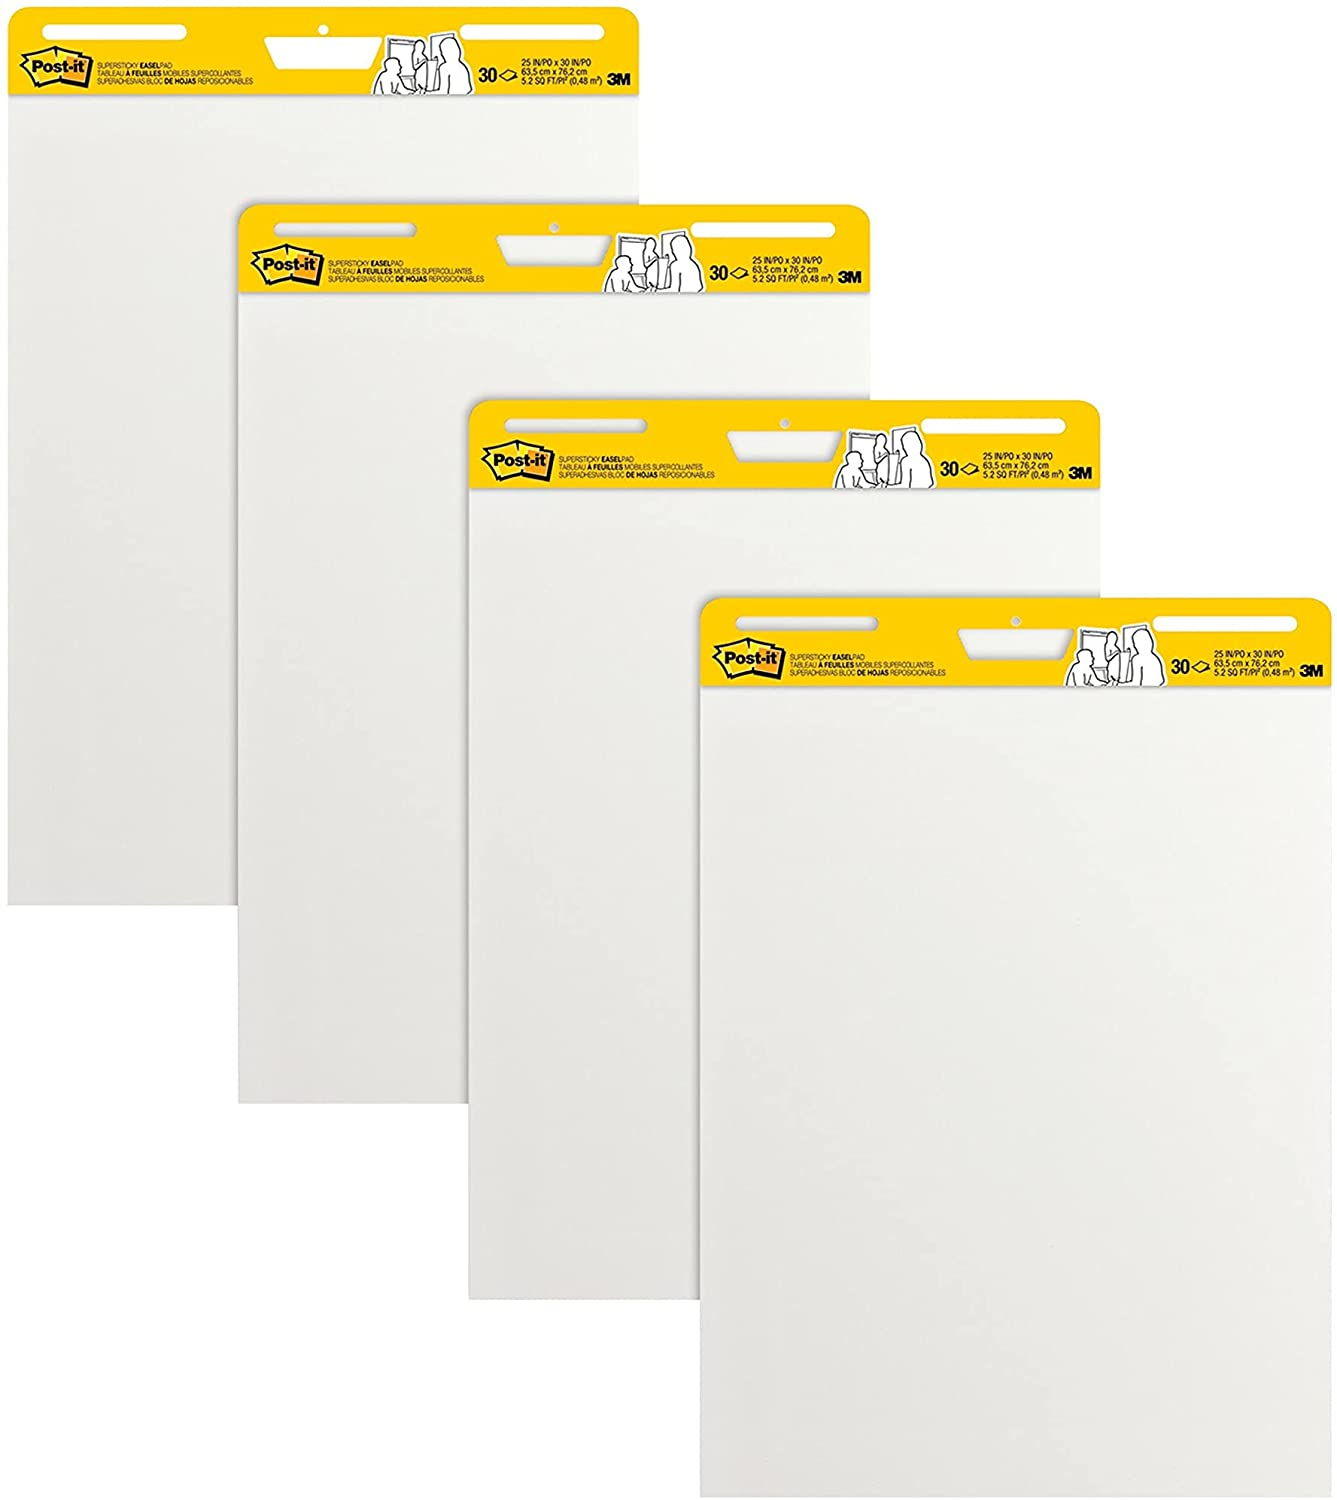 Post-it Super Sticky Easel Pad, 25 x 30 Inches, 30 Sheets/Pad, 4 Pads, Large White Premium Self Stick Flip Chart Paper, Super Sticking Power (559-4) : Post It Flip Charts : Office Products